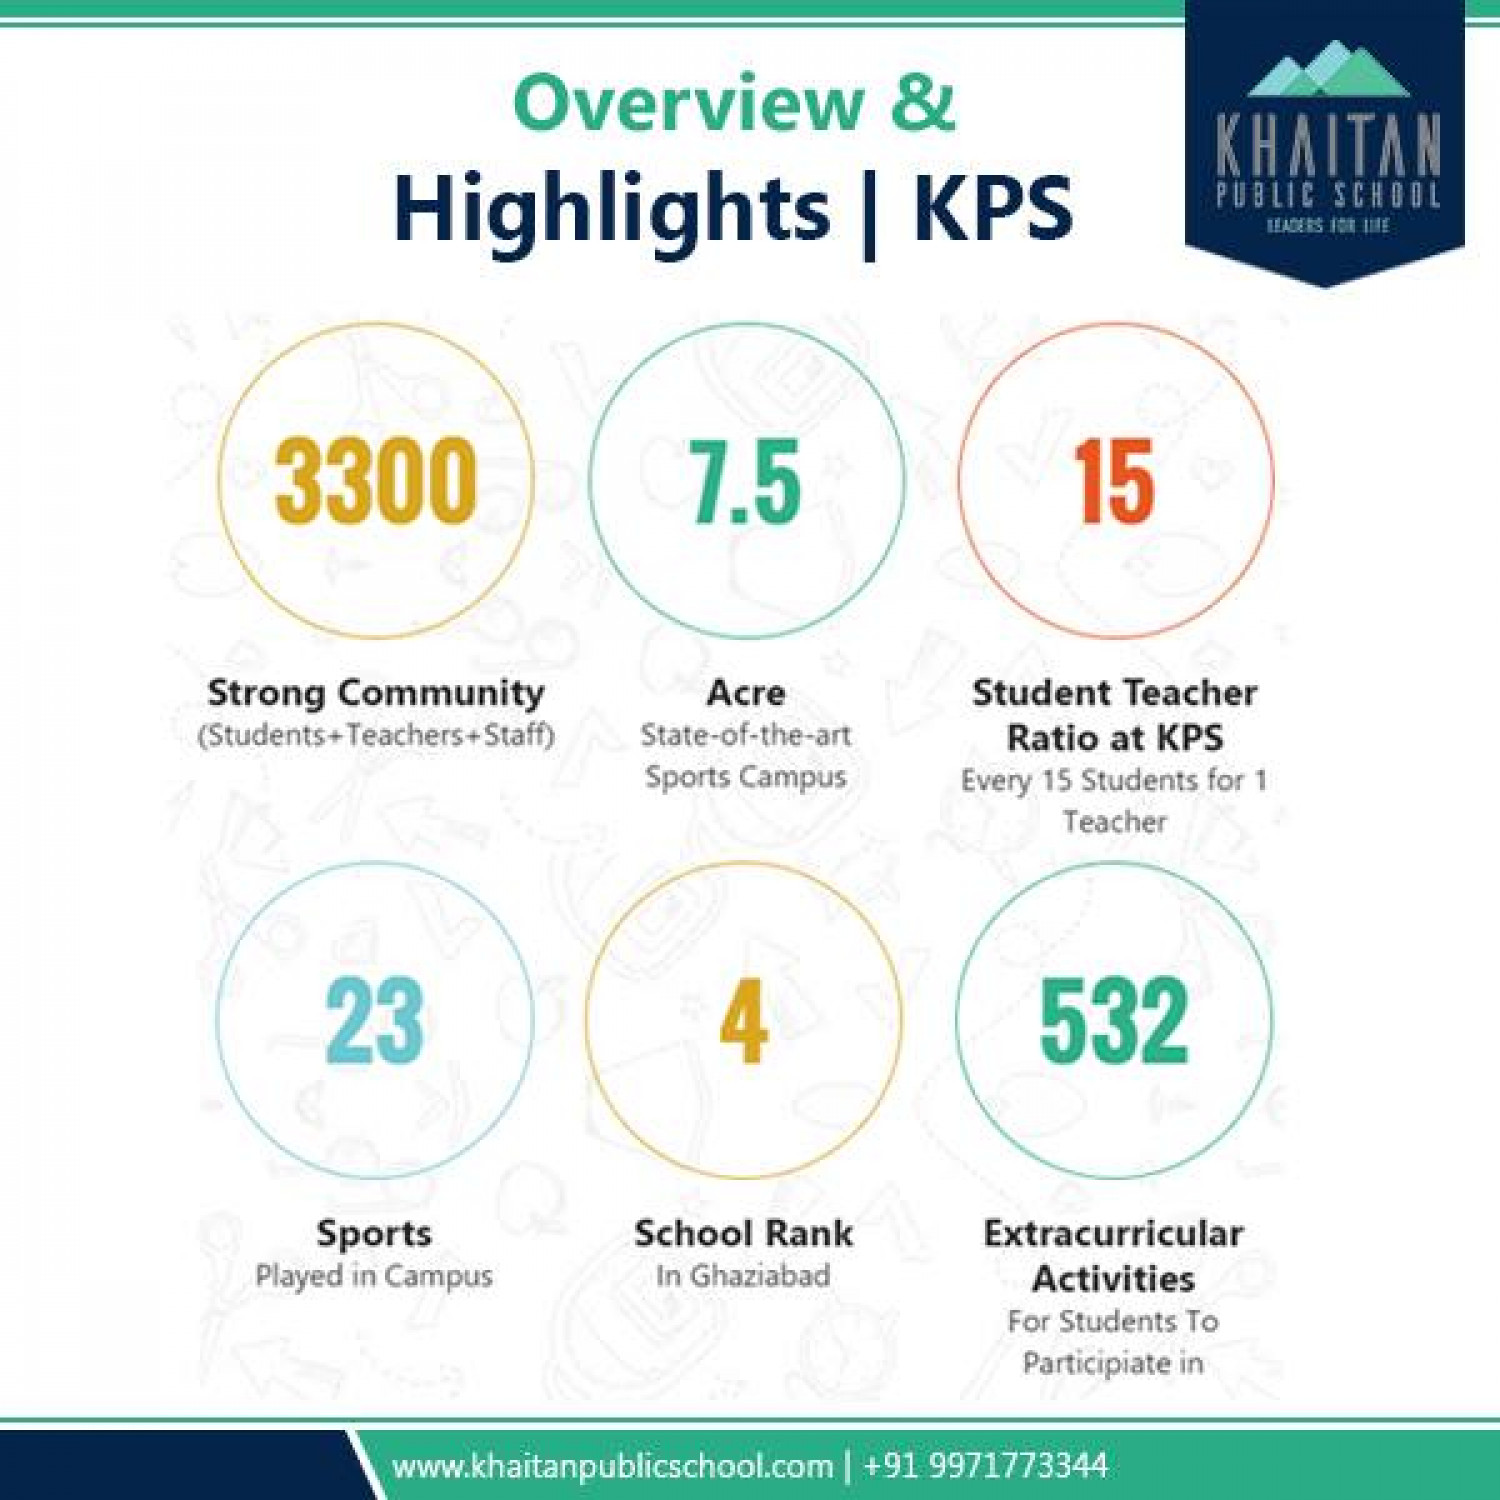 KPS Overview & Highlights Infographic